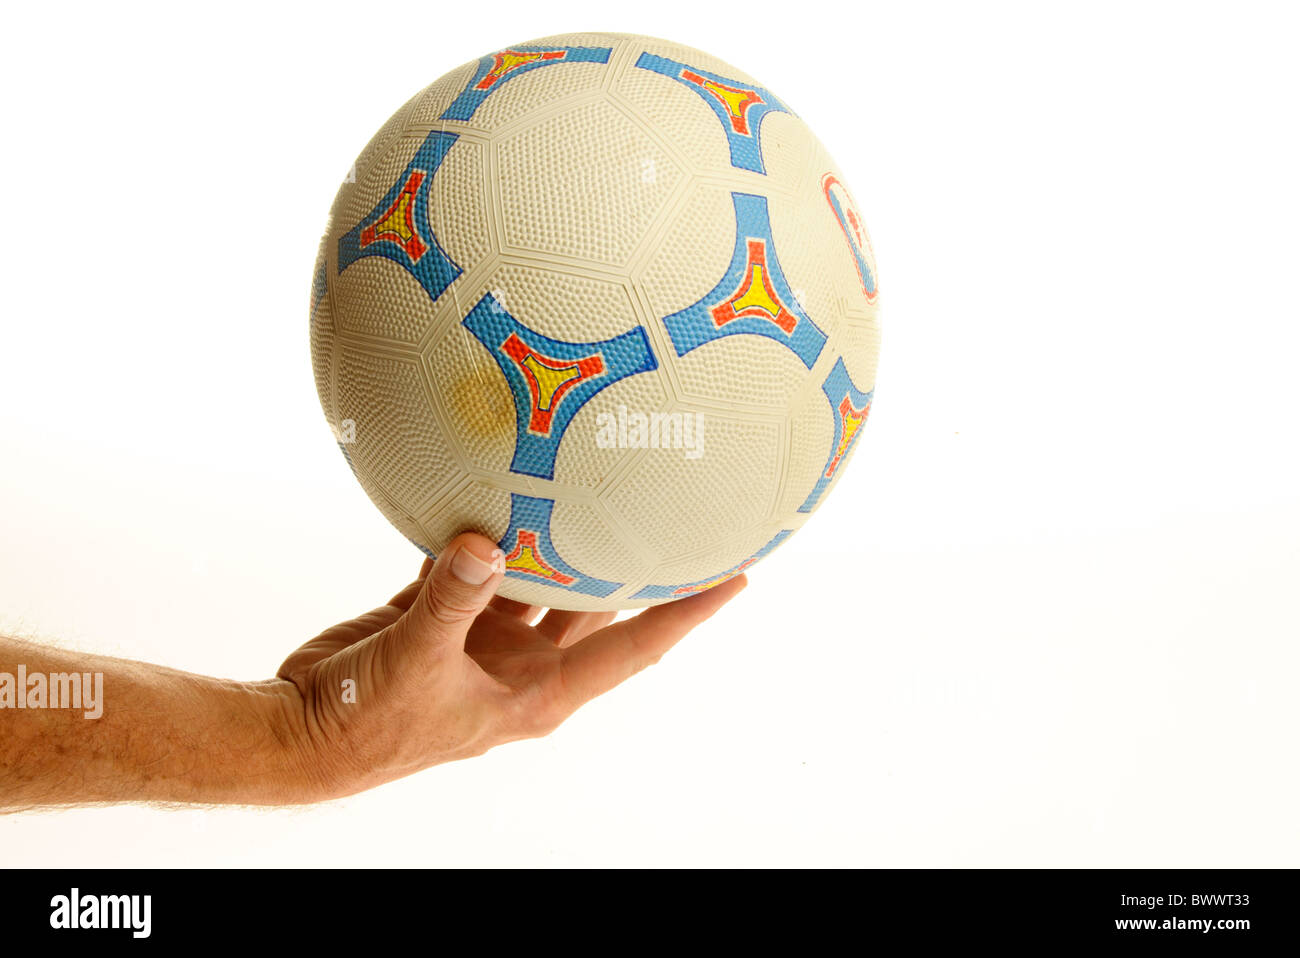 hand holding a football - Stock Image